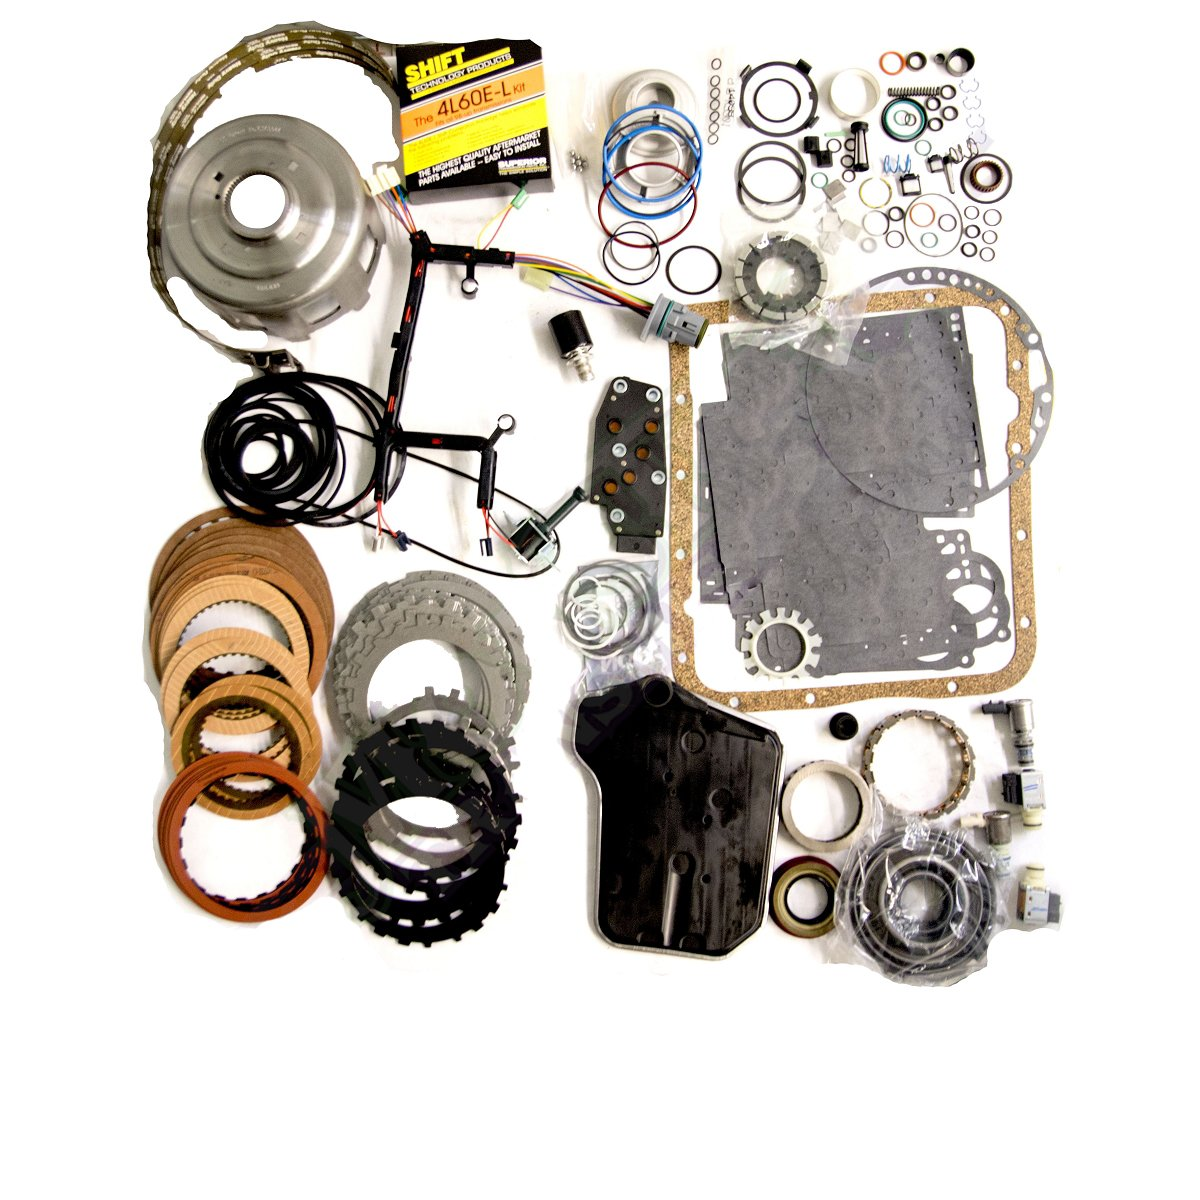 4L60E Transmission Rebuild Kit, Mega Monster-In-A-Box: 1993-97